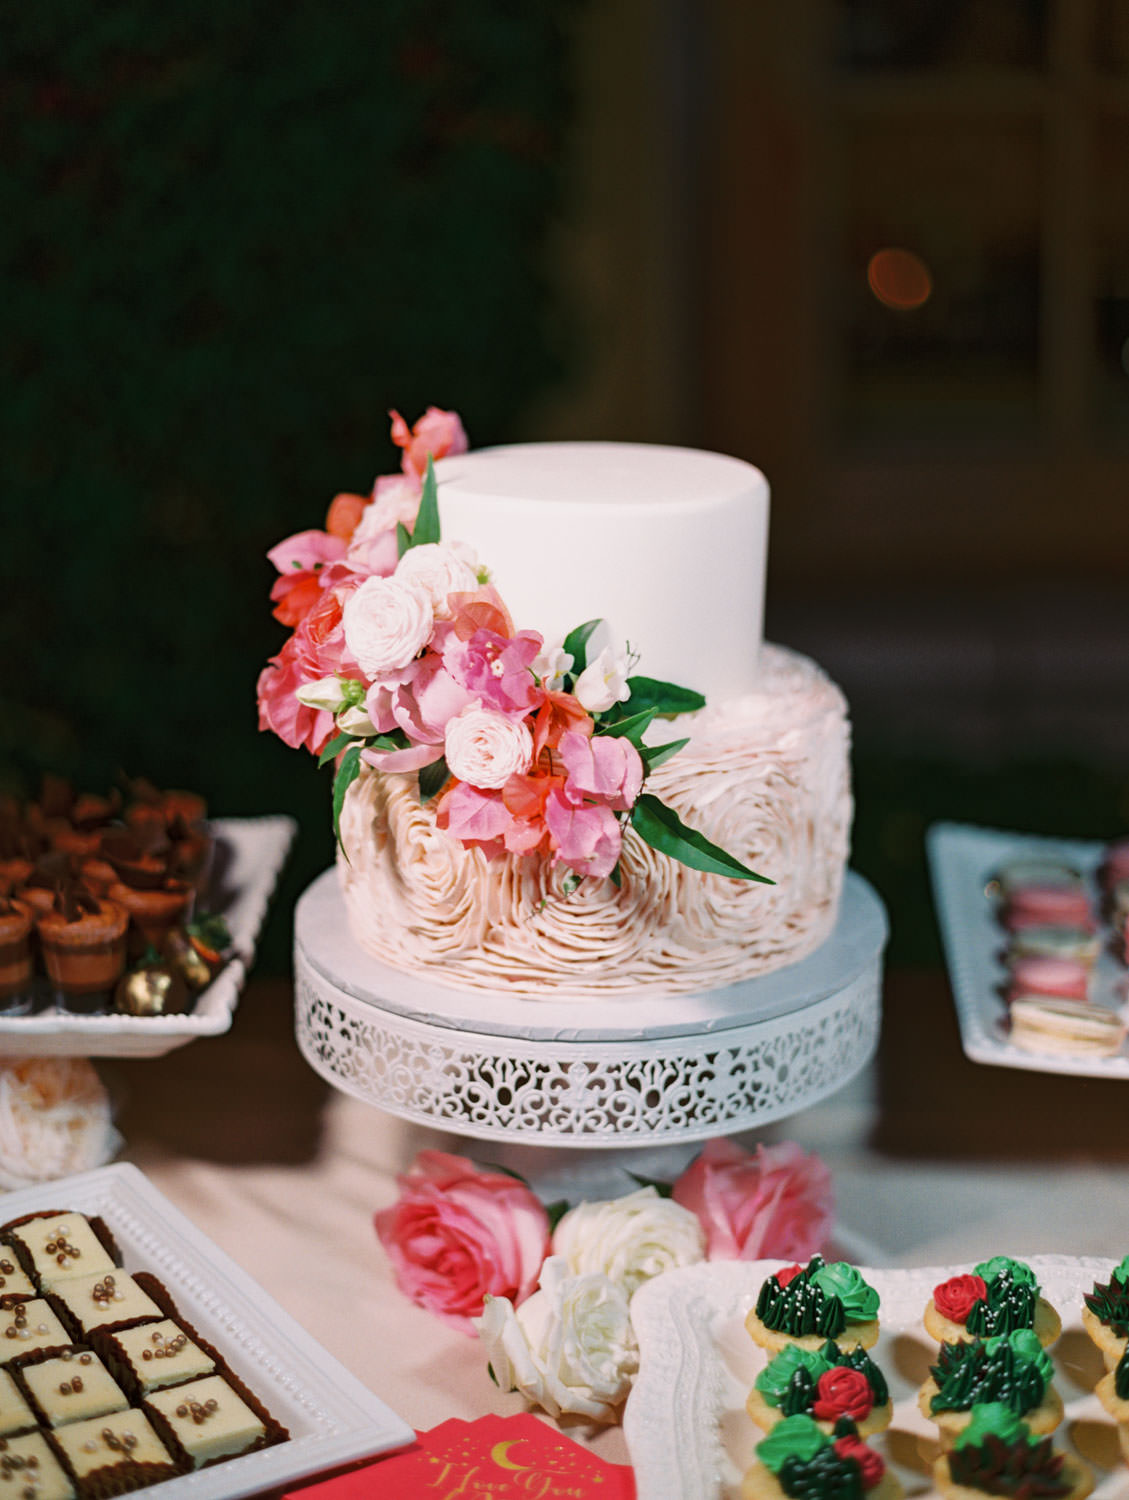 Dessert display on pink linens with various small desserts like cookies and cupcakes. Two tier wedding cake with blush floral icing on bottom and white top tier with cascading pink and ivory flowers. Film photography by Cavin Elizabeth.